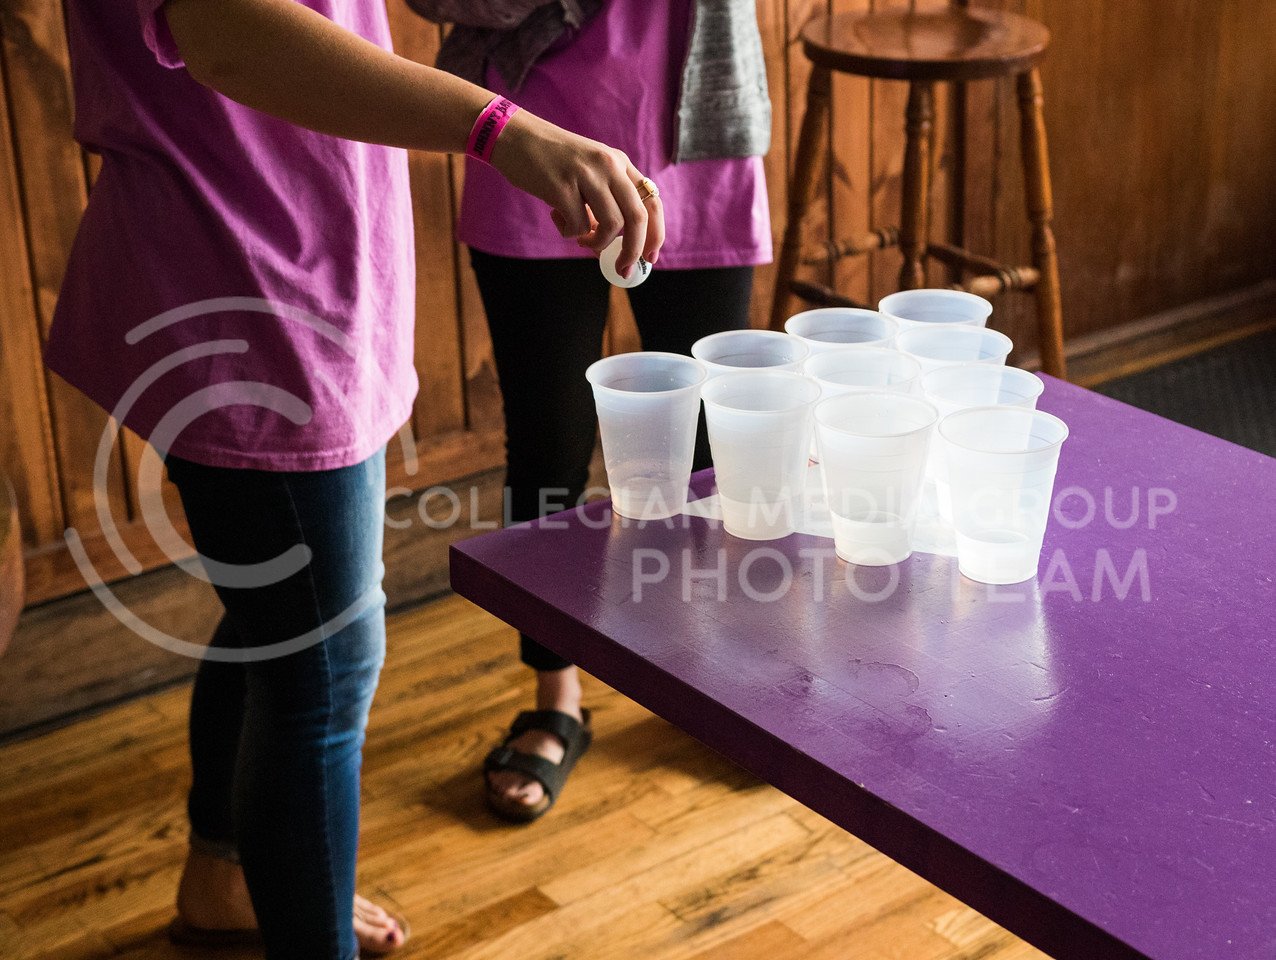 Attendees play water pong at the Ayres Baalman Rally in Johnny Kaw's Sports Bar on Feb. 11, 2017. (John Benfer   The Collegian)